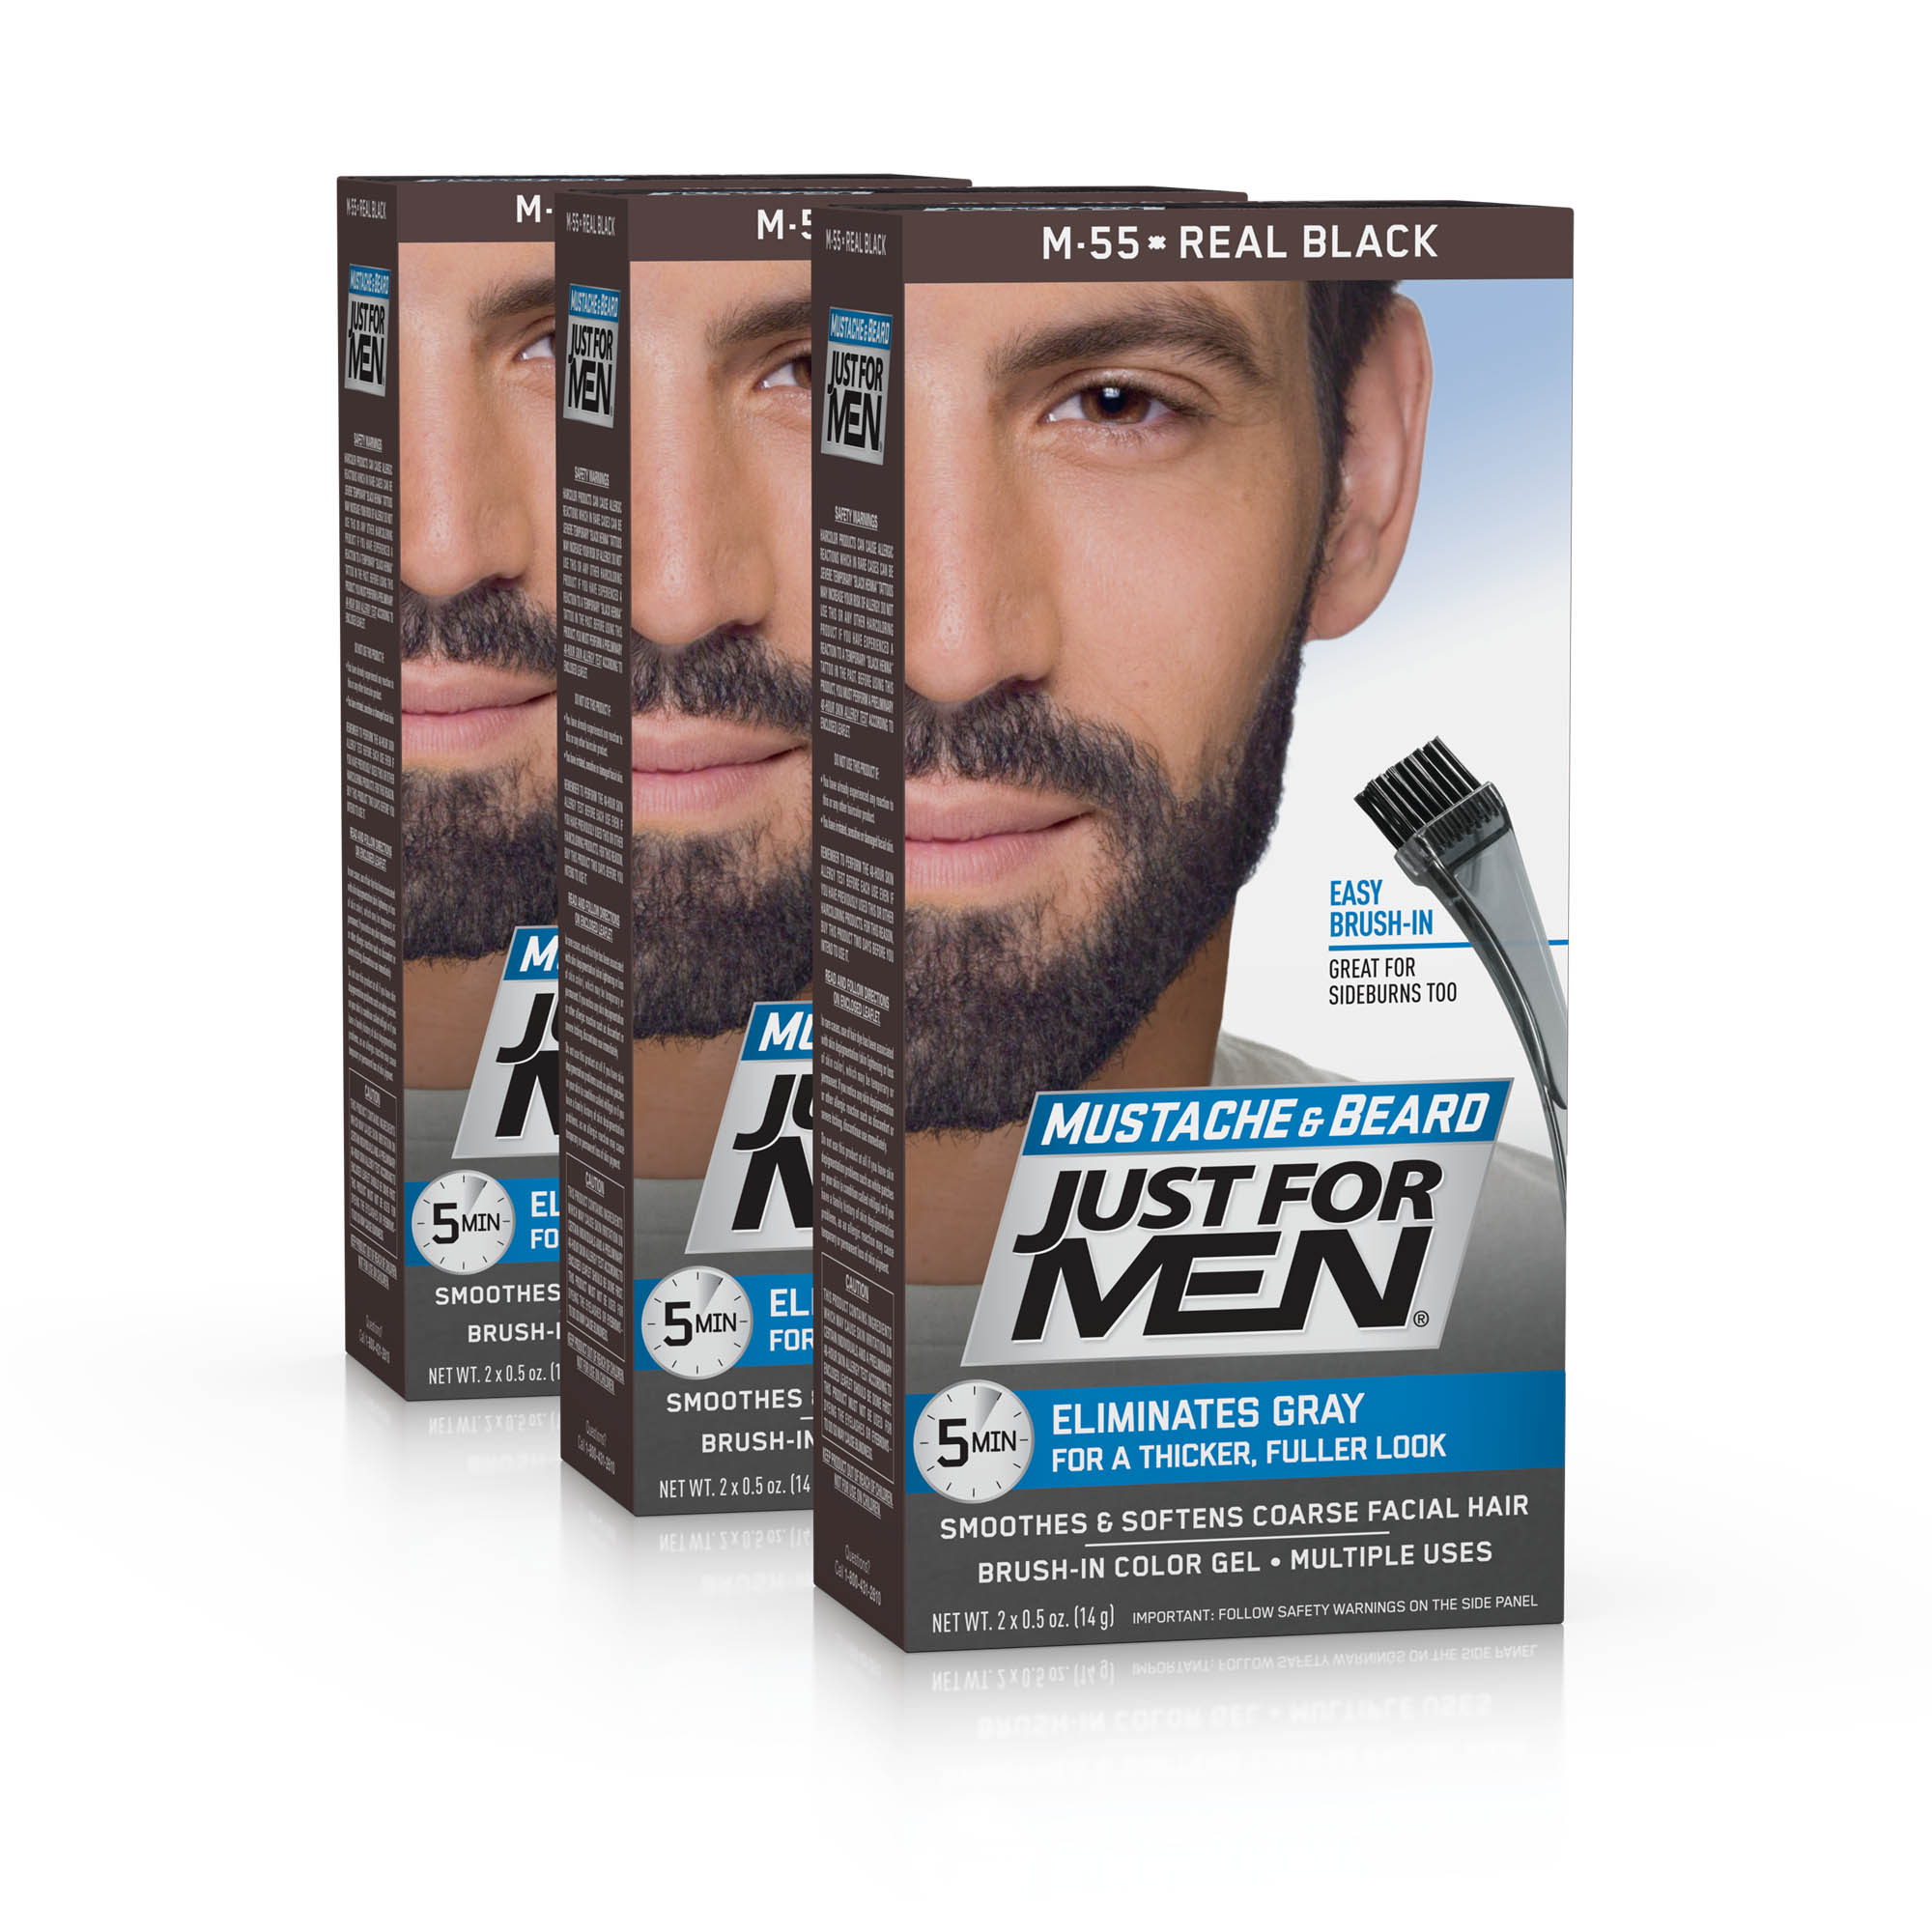 Just For Men Mustache and Beard, Easy Brush-In Facial Hair Color Gel, Real Black, Shade M-55 (Pack of 3)